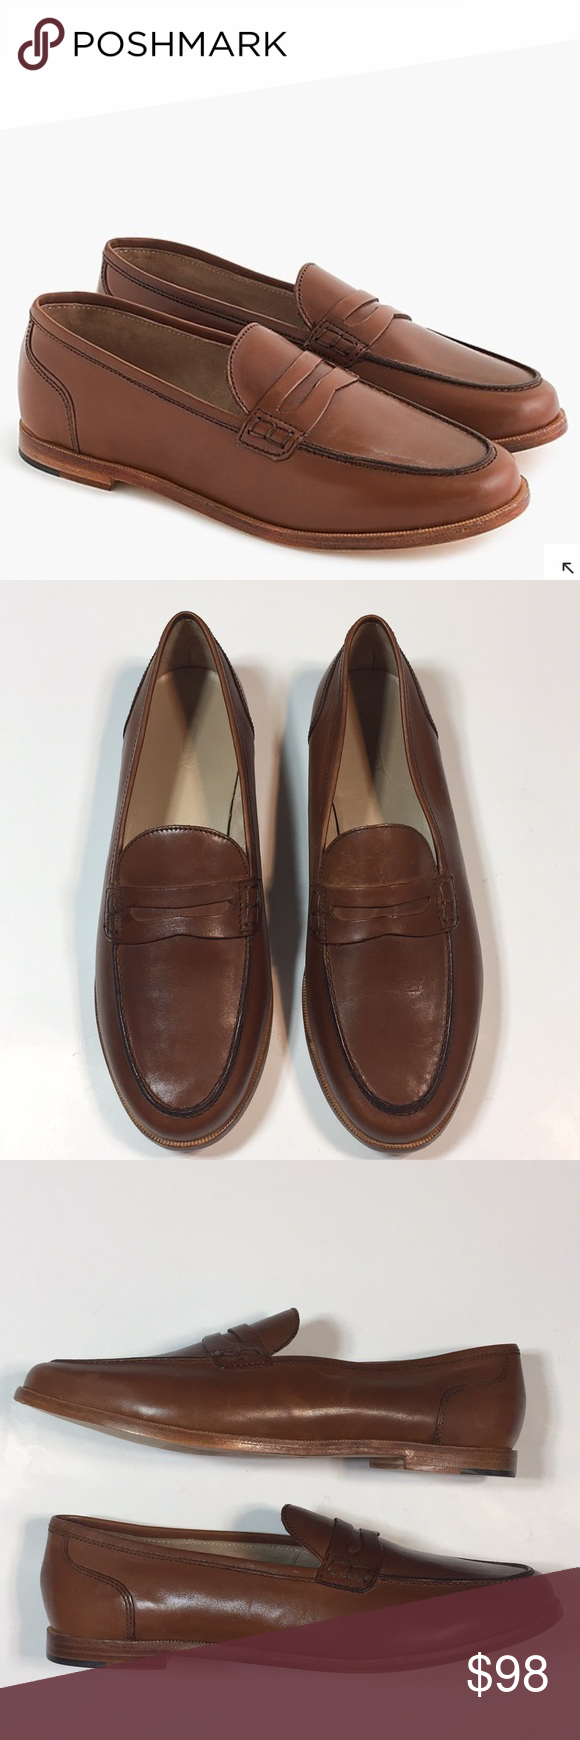 dd5654aad08 J. Crew Ryan penny loafers in Leather J. Crew Ryan penny loafers in Leather  Color  Burnished Pecan Condition  Like New J. Crew Shoes Flats   Loafers